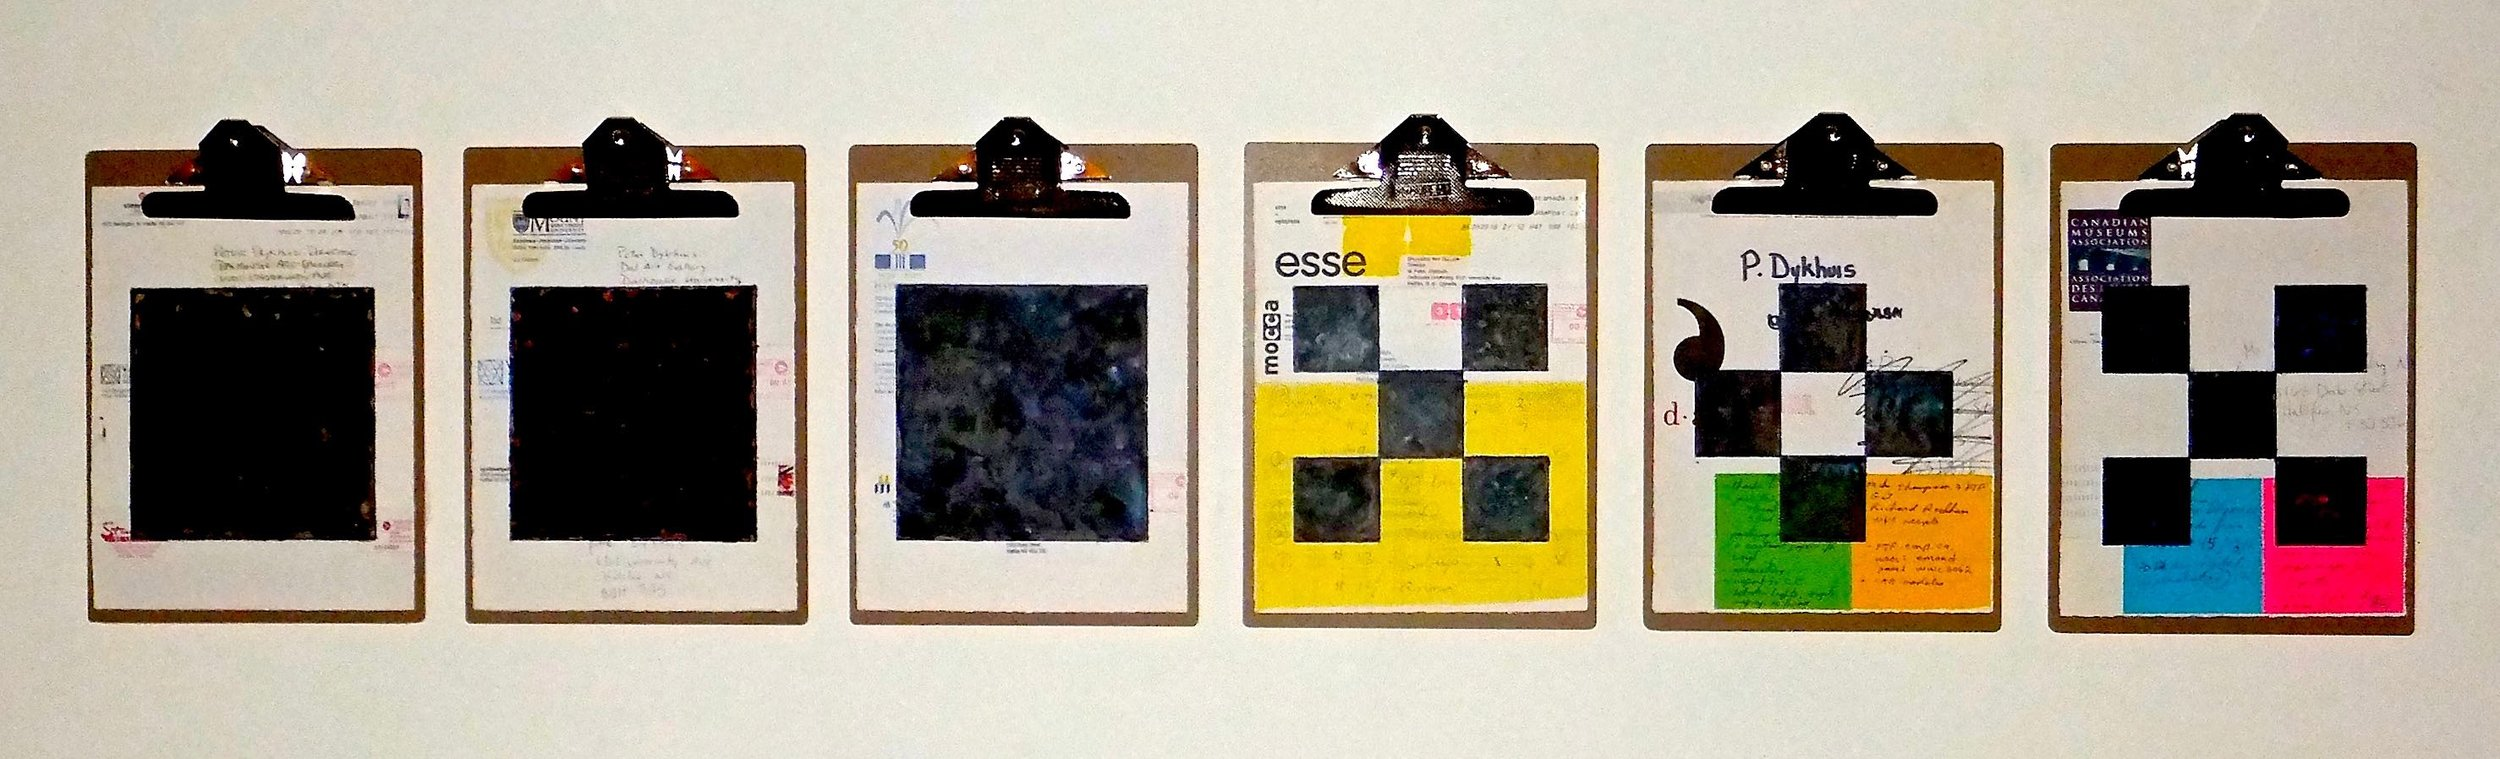 """Art World #1, 2014, encaustic, mixed media collage on paper, mounted on 6 commercial clipboards, 13"""" × 59"""", set of clipboards depicted counts as one artwork, 450 CAD"""